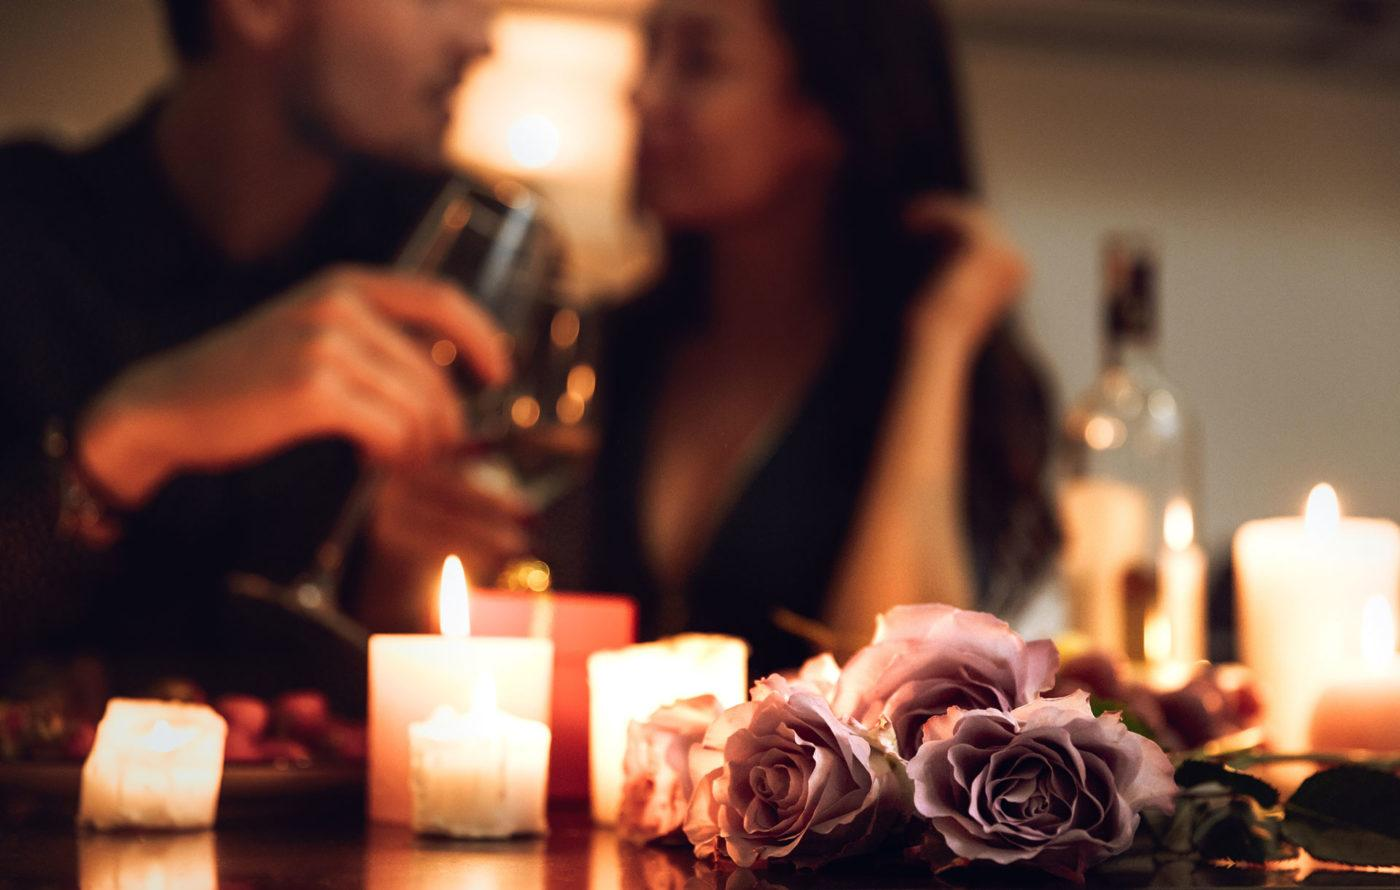 roses and candles sitting on table with blurred couple in background